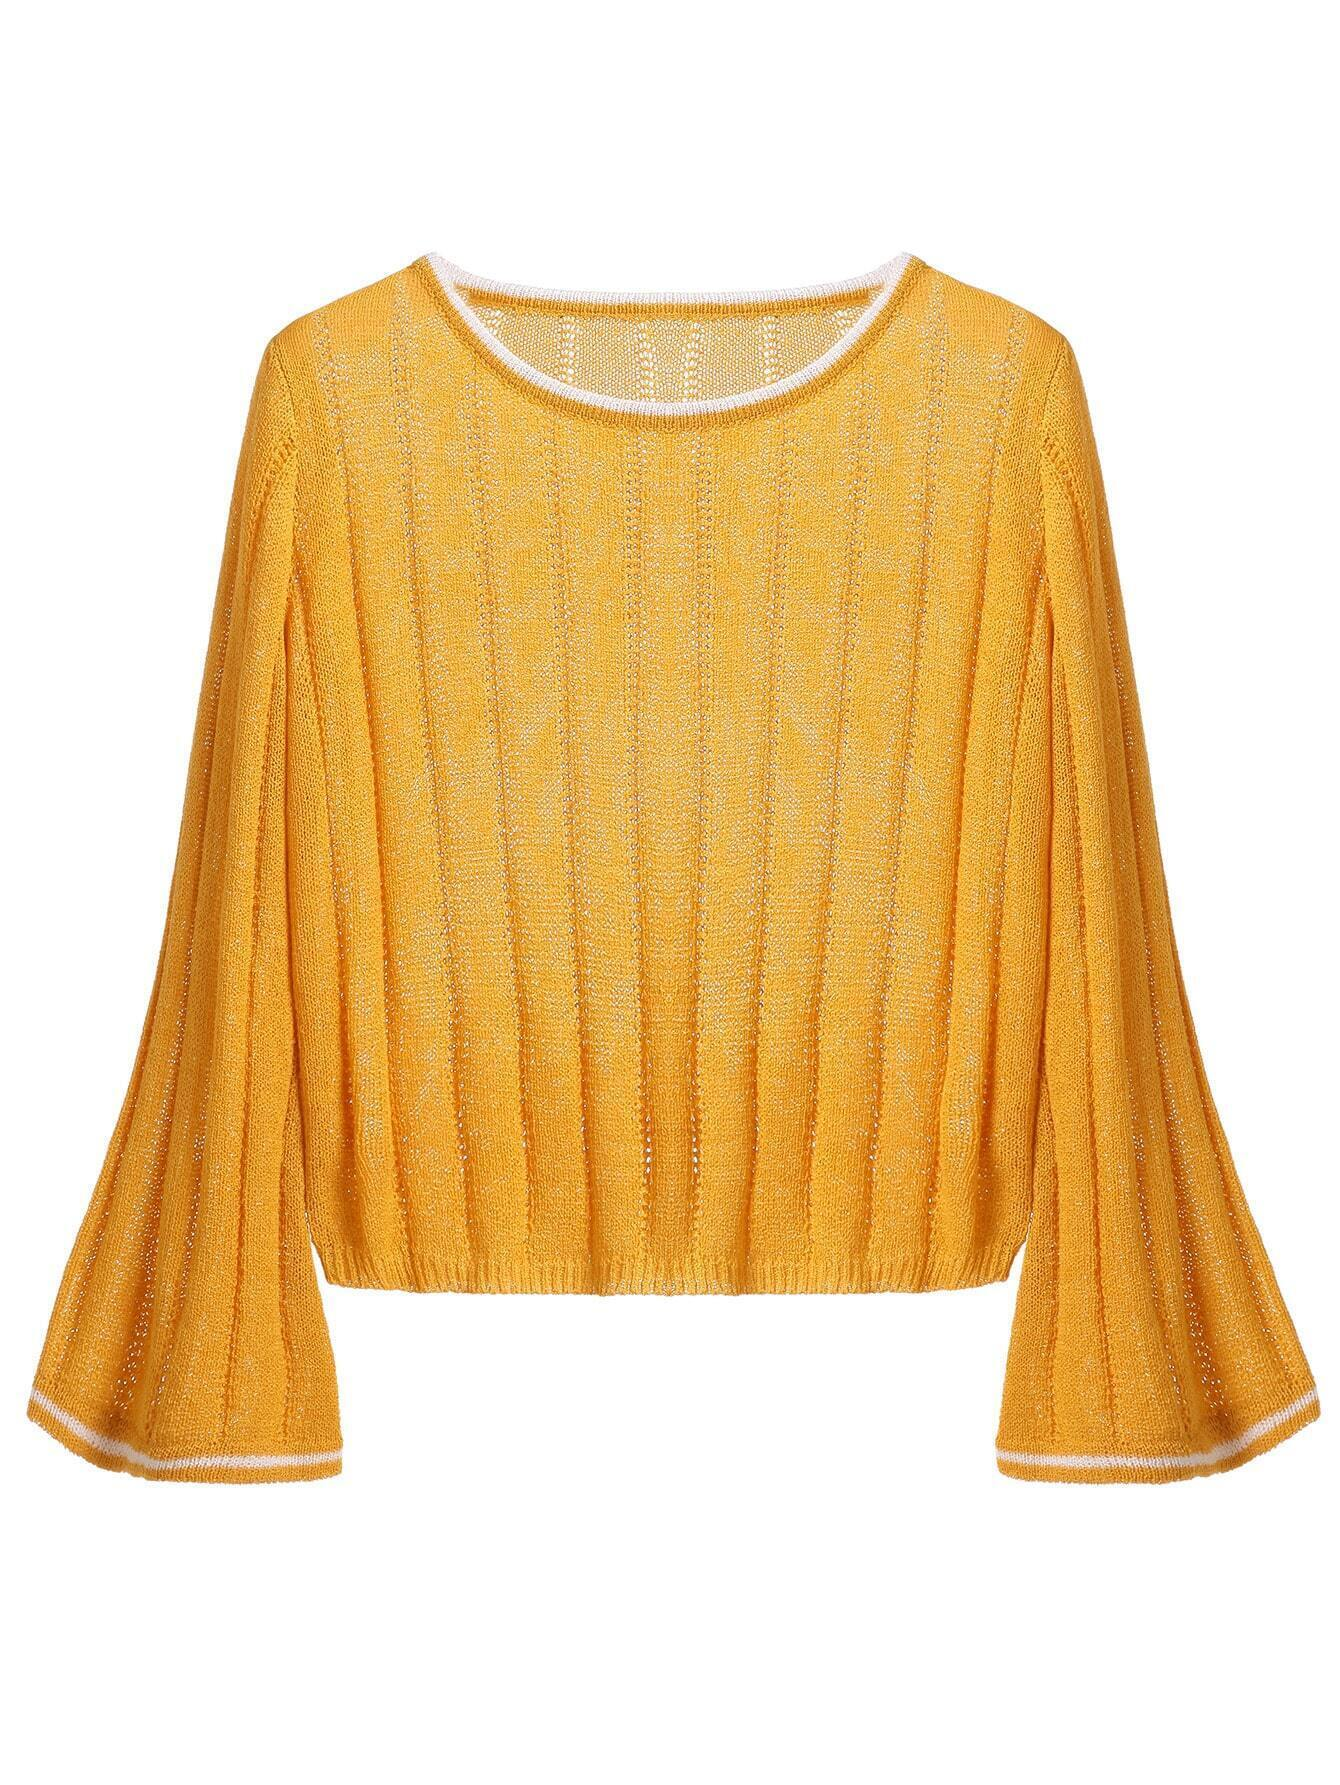 Ginger Contrast Trim Ribbed Crop Sweater RKNI160909001